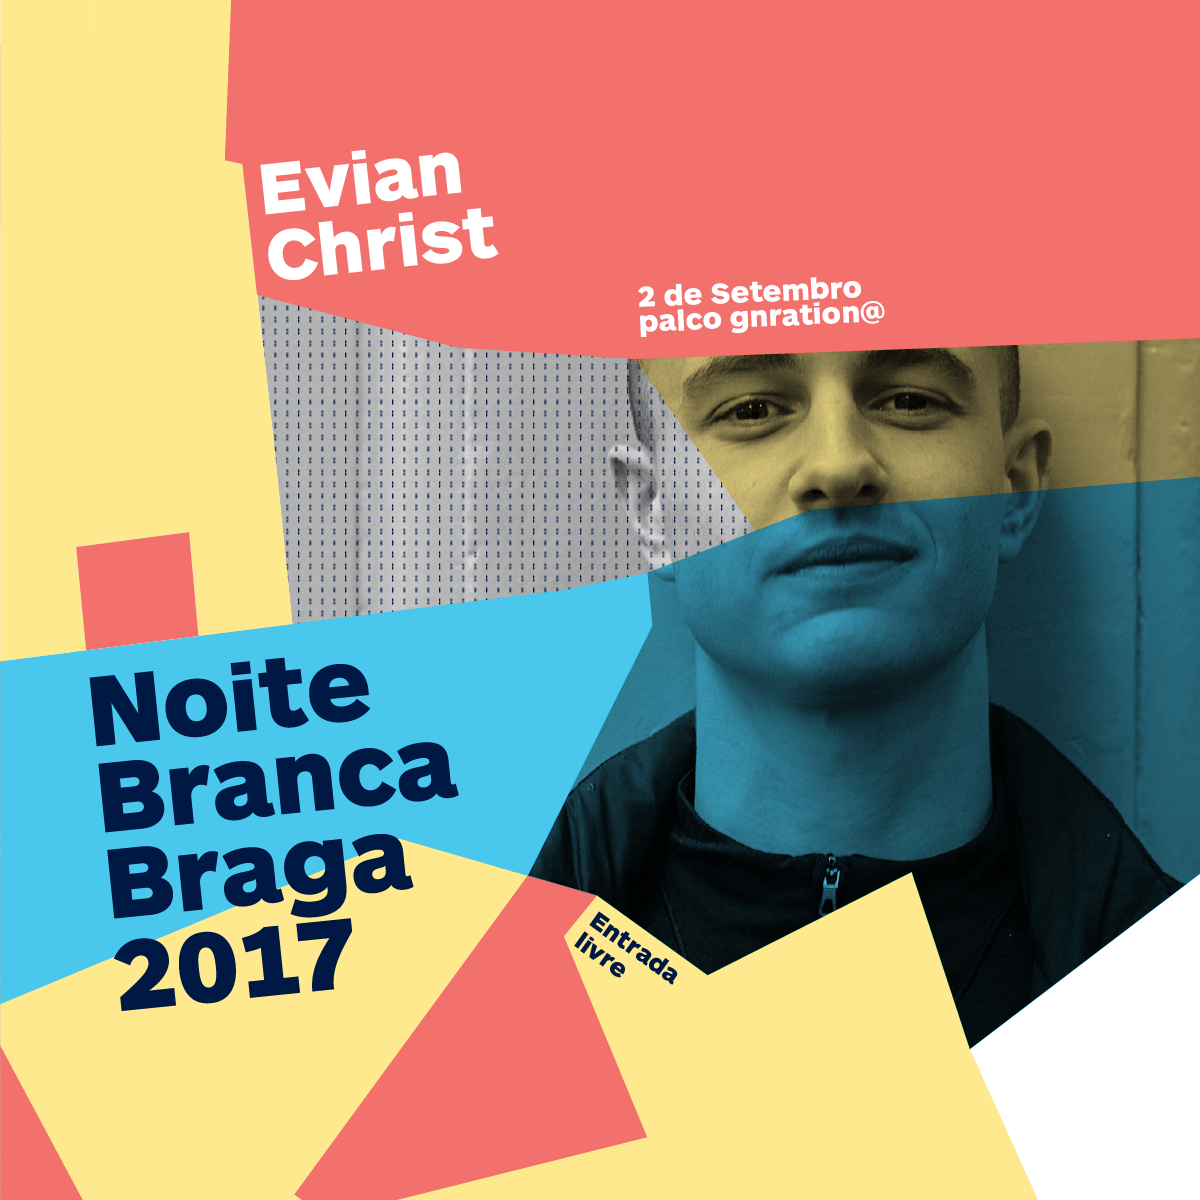 evian-christ-we-braga-noite-branca